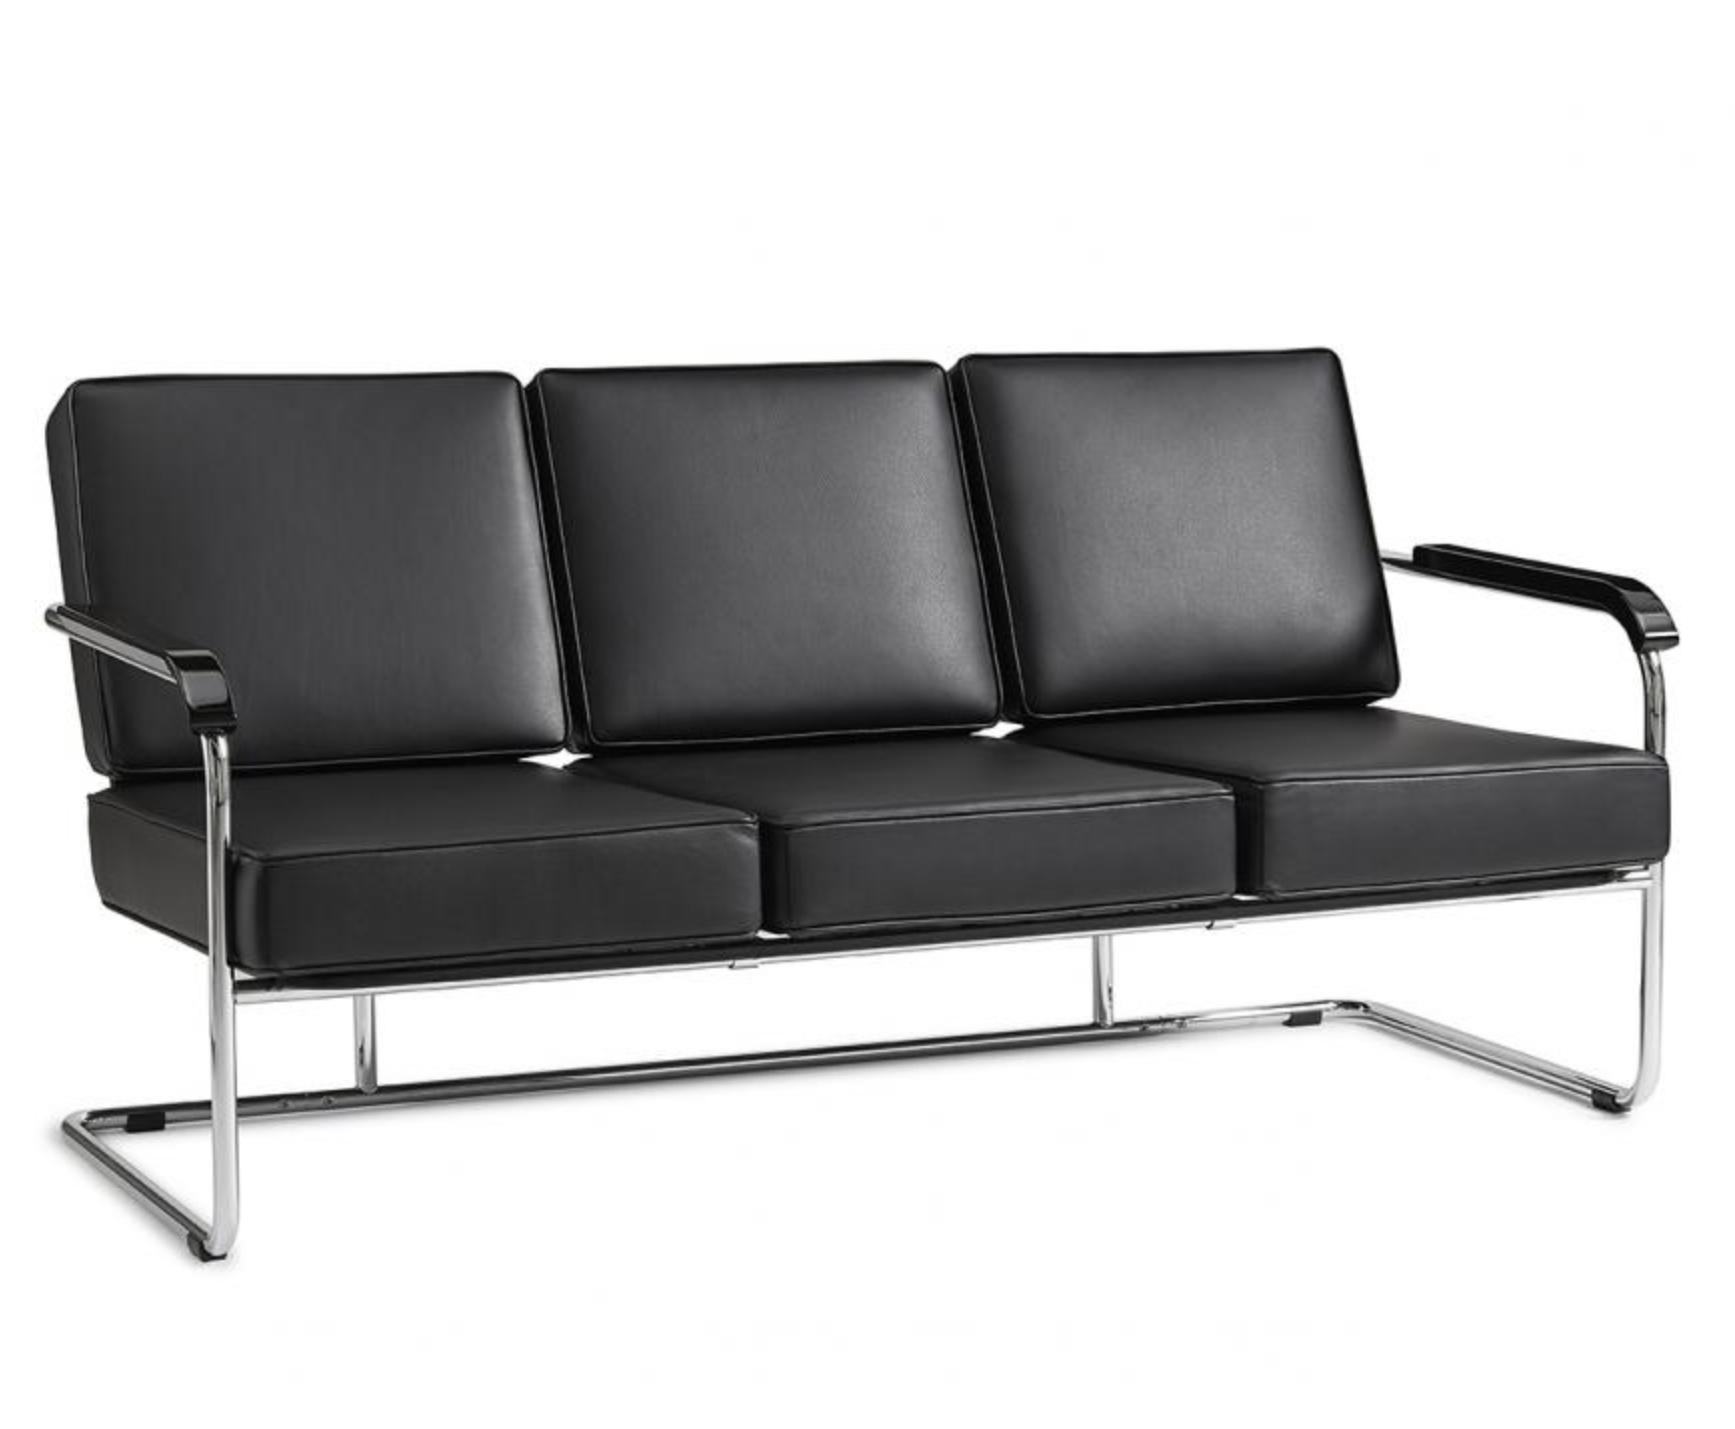 Moser Sofa 1438 by embru